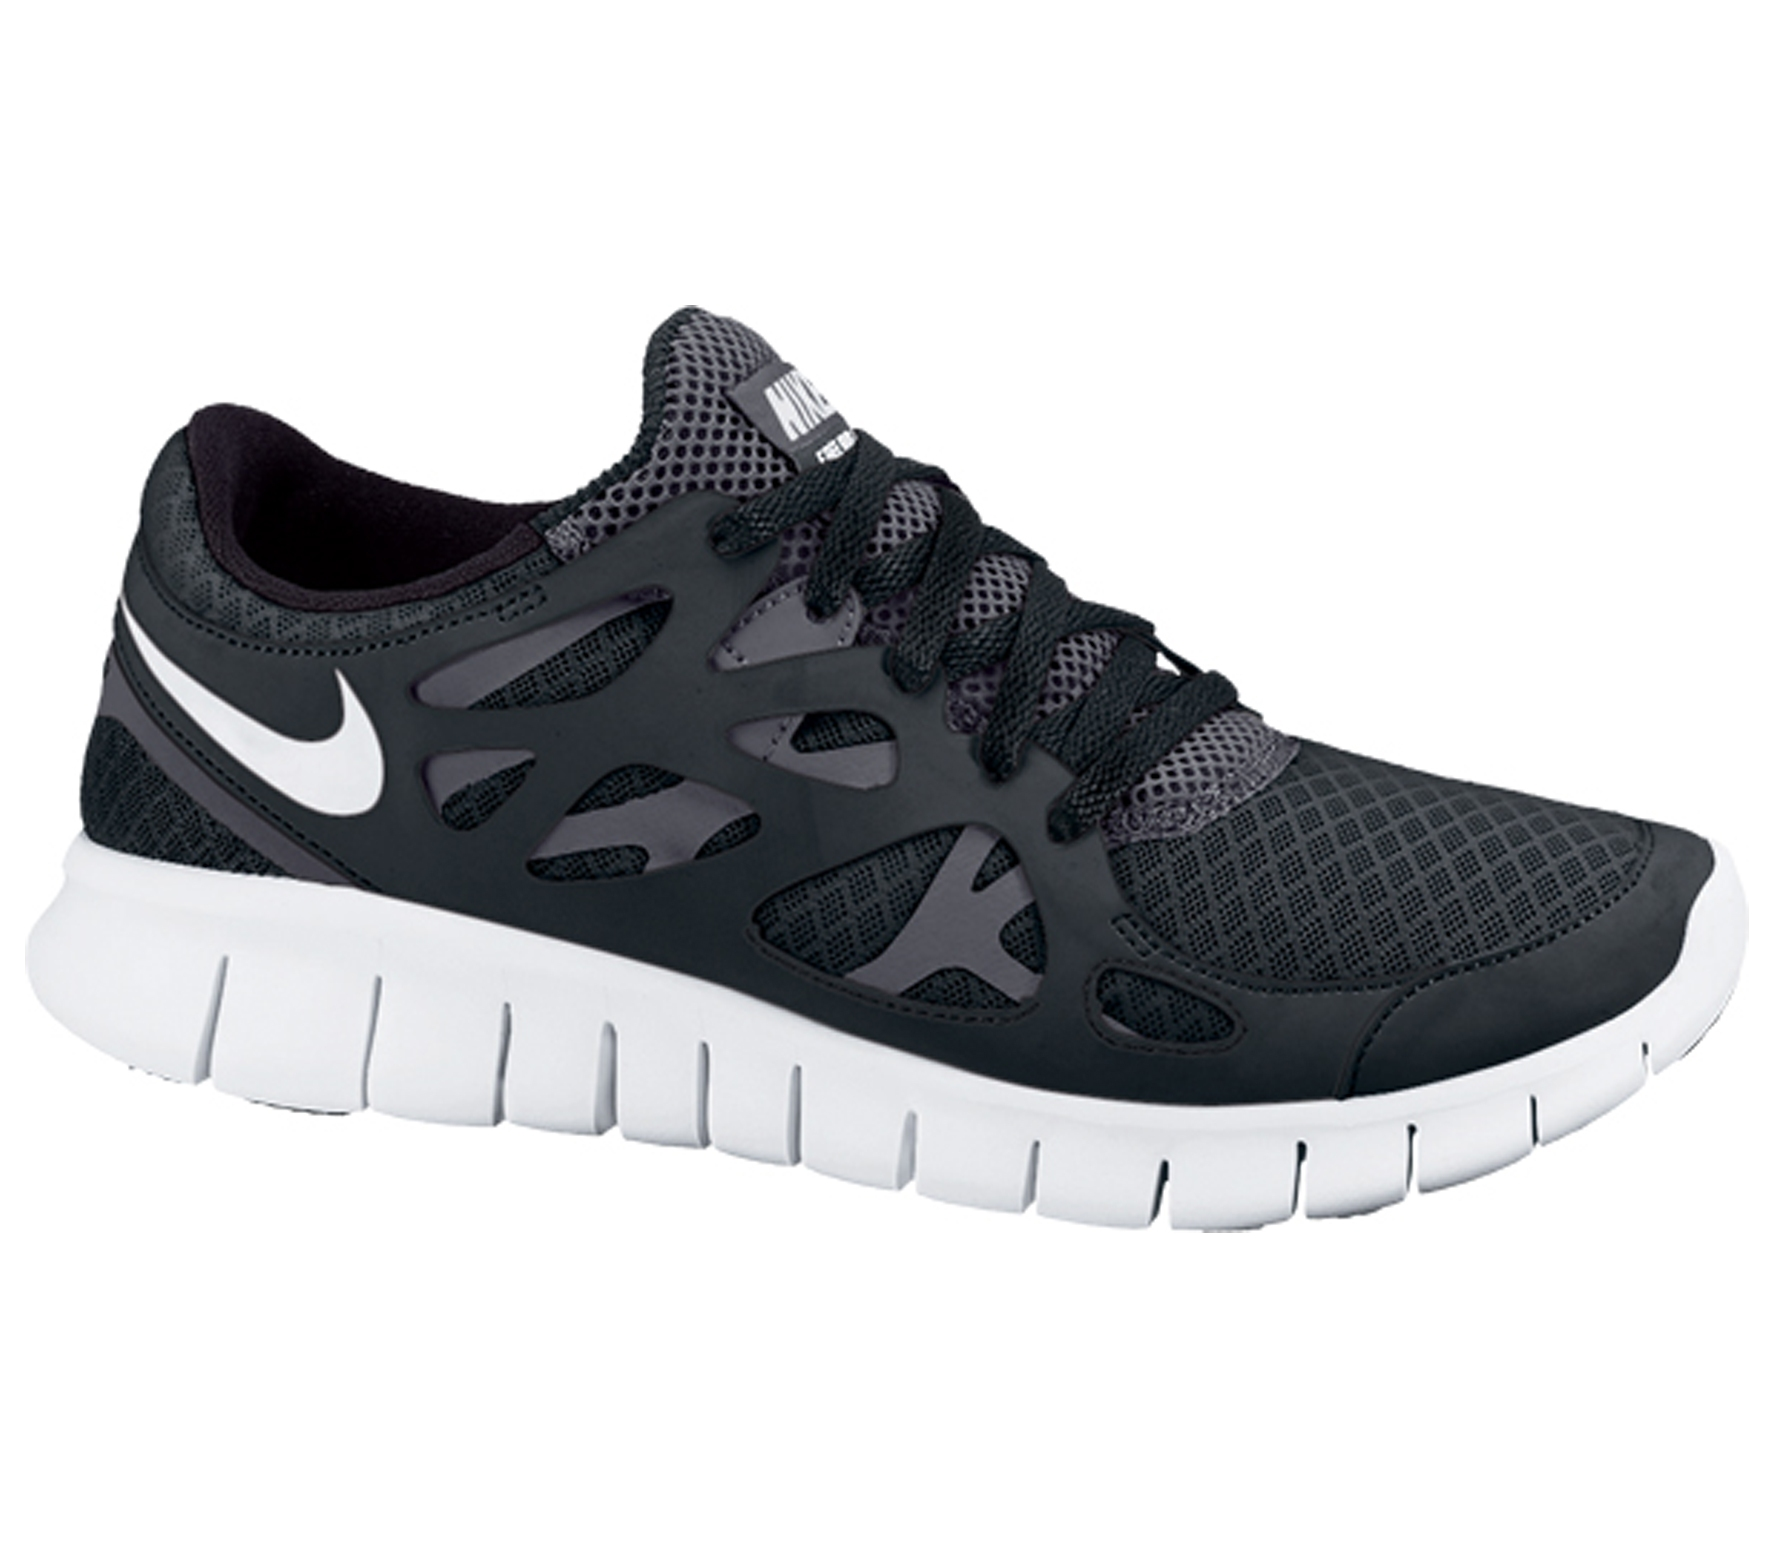 Nike Free Run 2 EXT W Schuhe schwarz lila im WeAre bwin quoten boxen bwin affiliate programme Shop